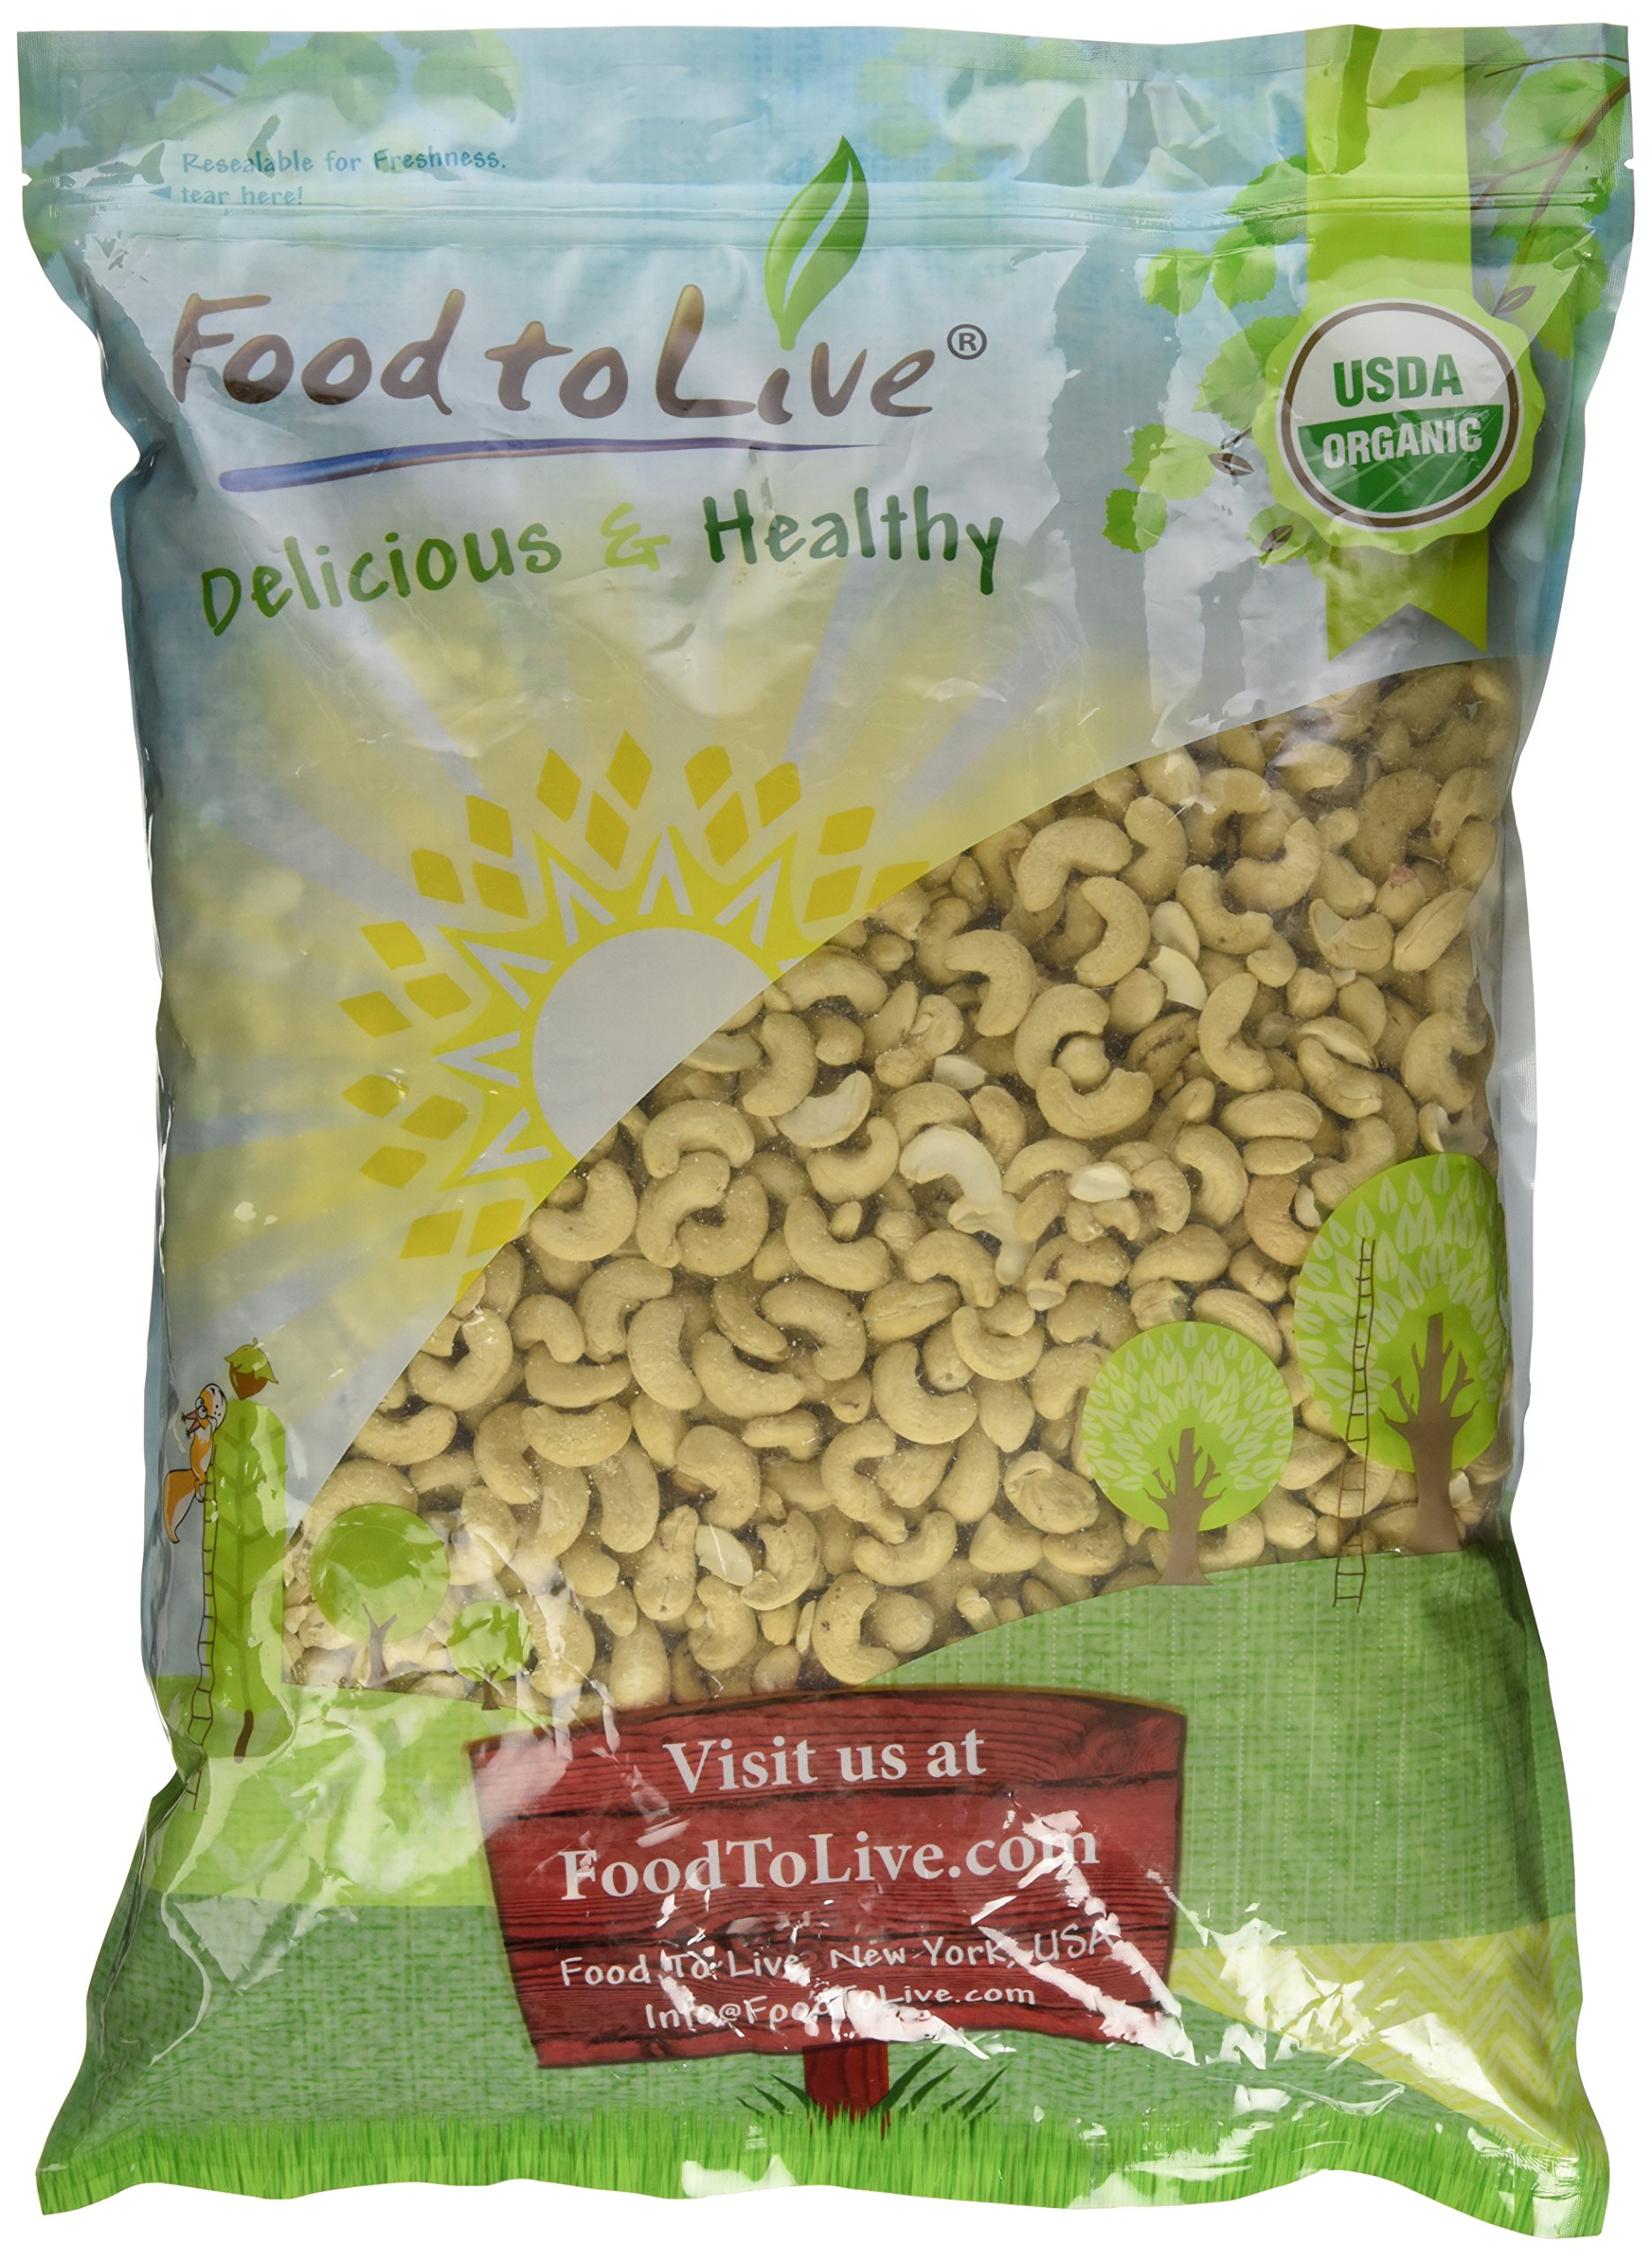 Organic Raw Cashews by Food to Live (Non-GMO, Whole, Unsalted, Bulk) — 8 Pounds